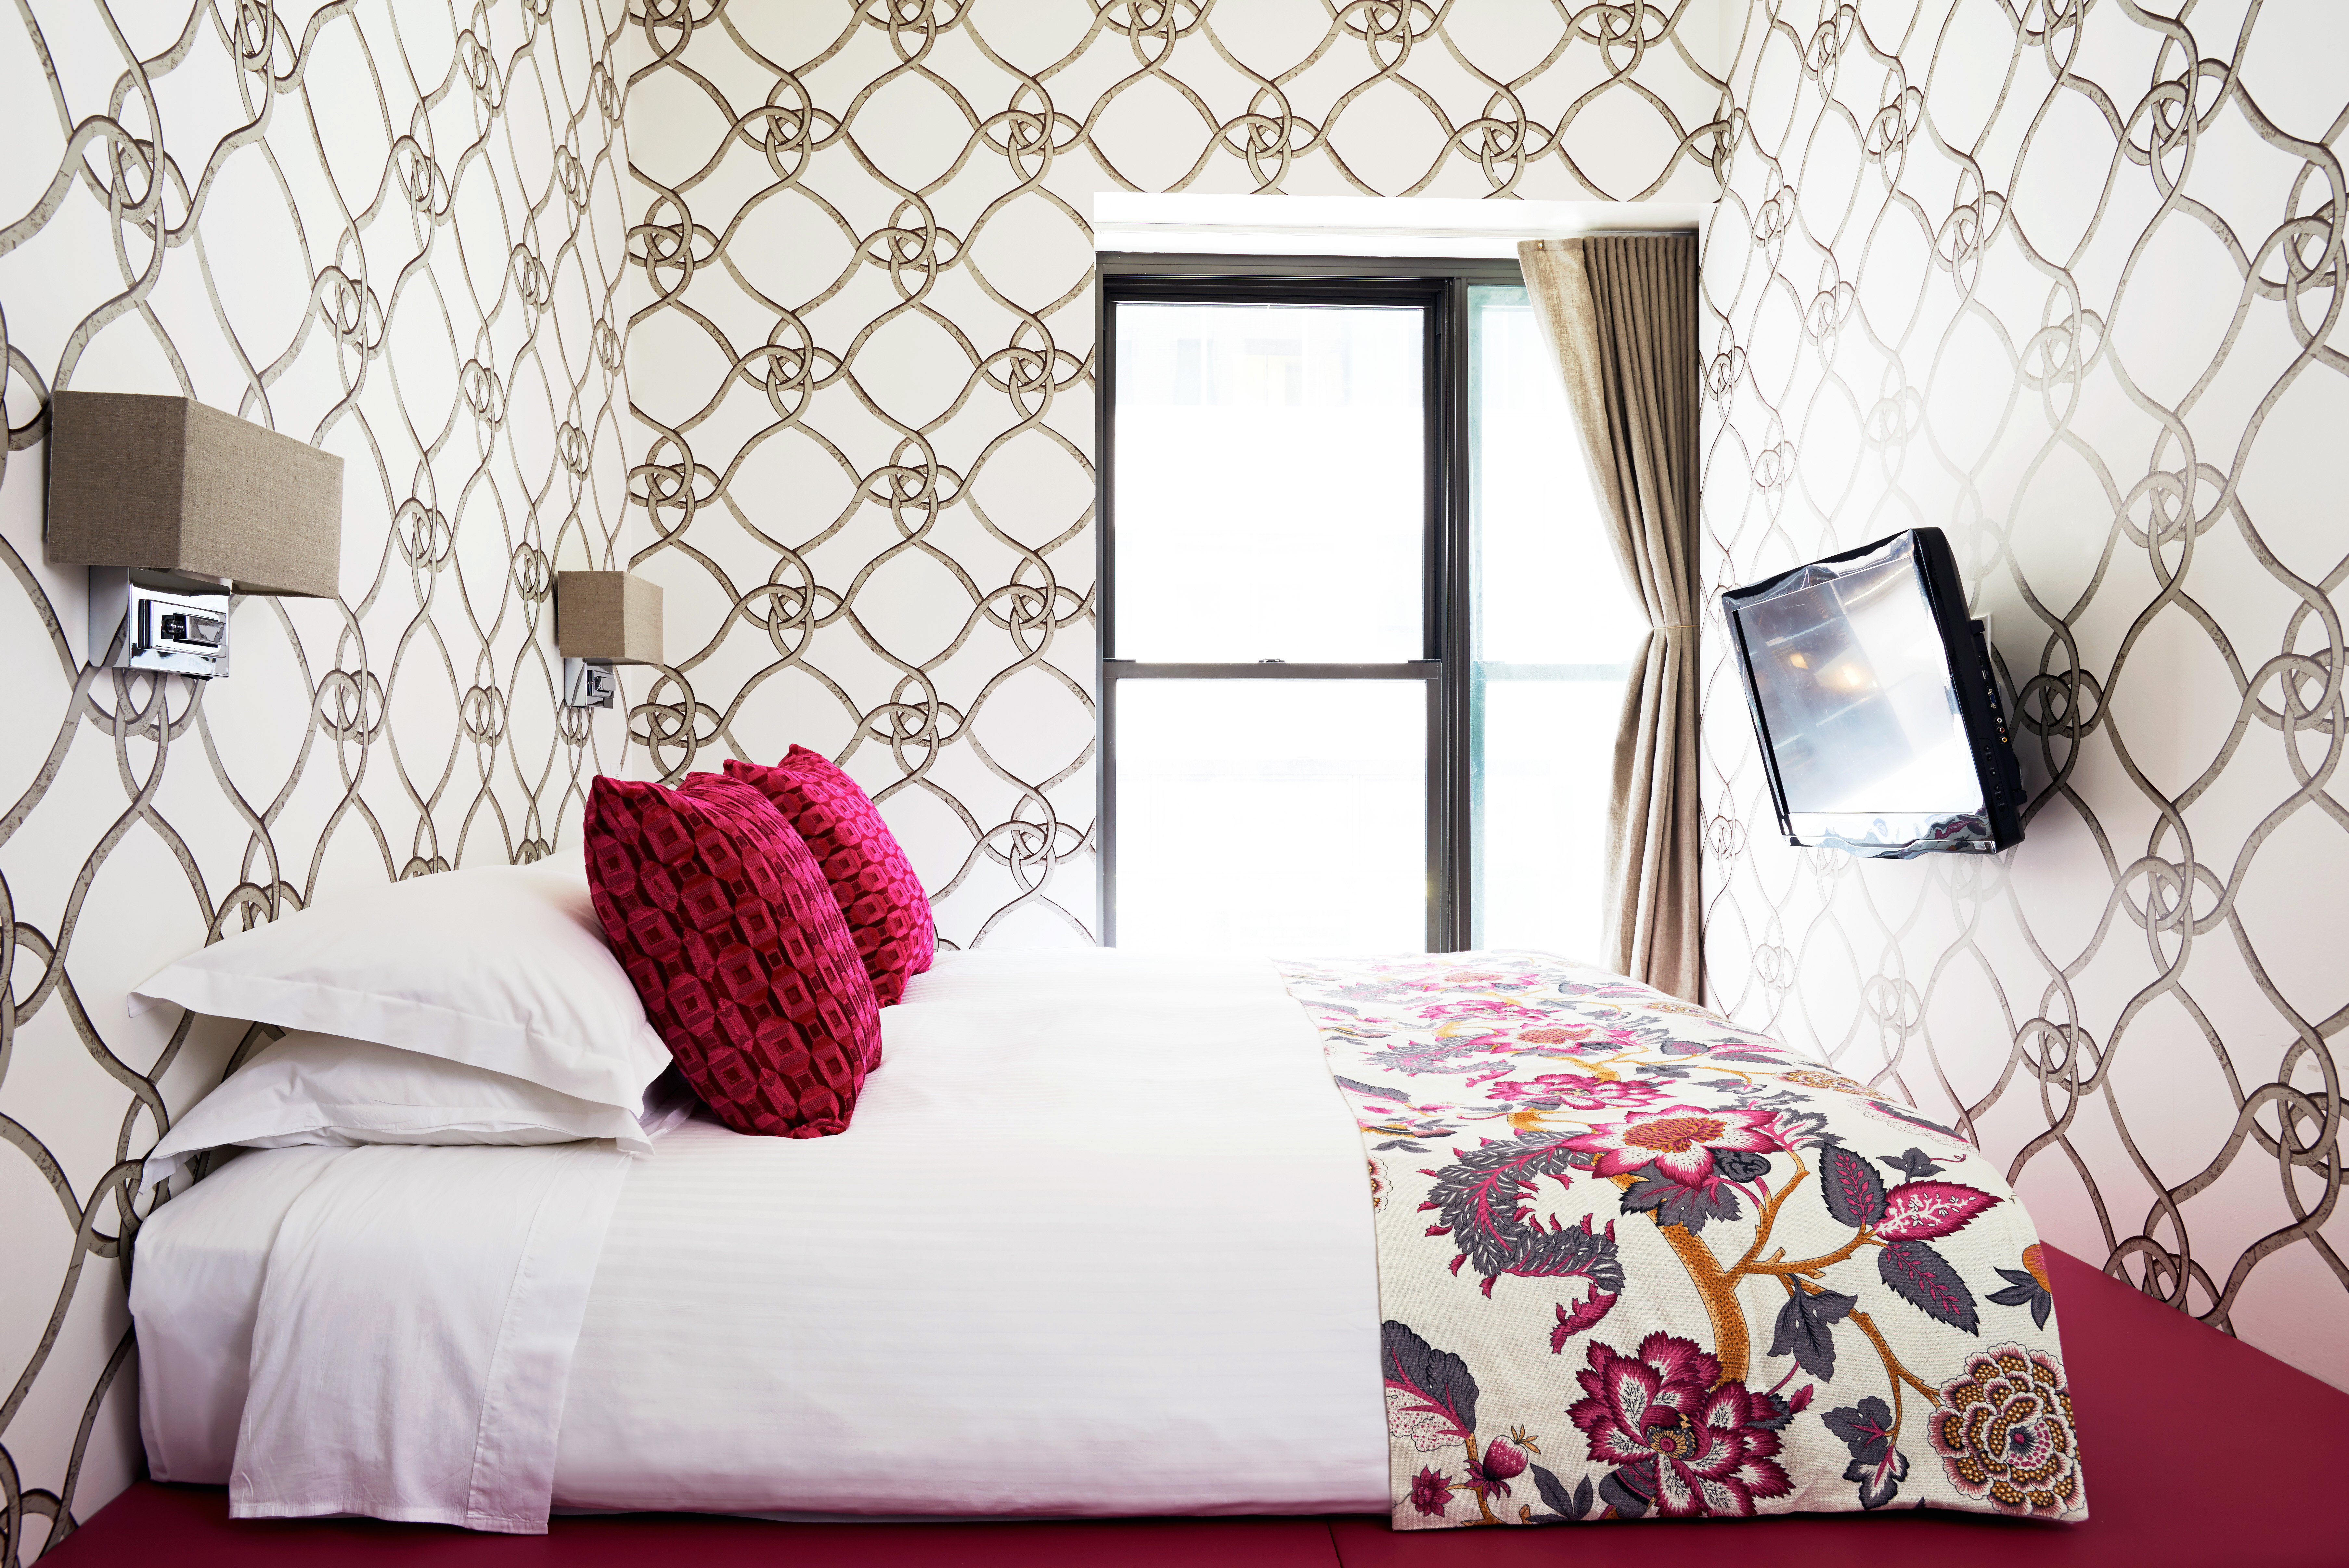 Bedroom Boutique Budget City Hip Modern Suite living room bed sheet textile wallpaper flooring lamp